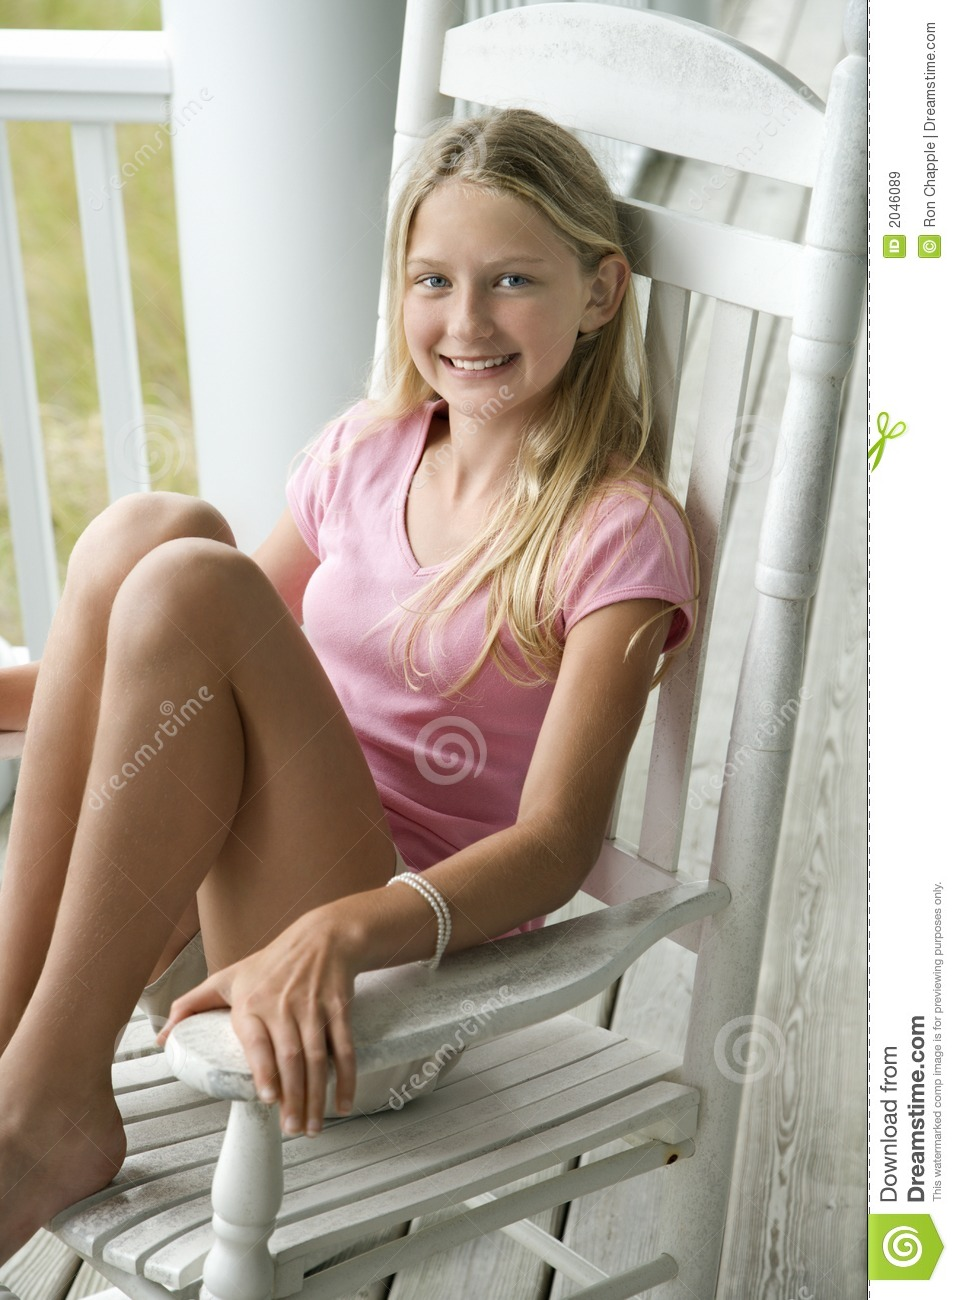 Cute Wallpapers For Tween Girls Girl Sitting In Chair Royalty Free Stock Images Image